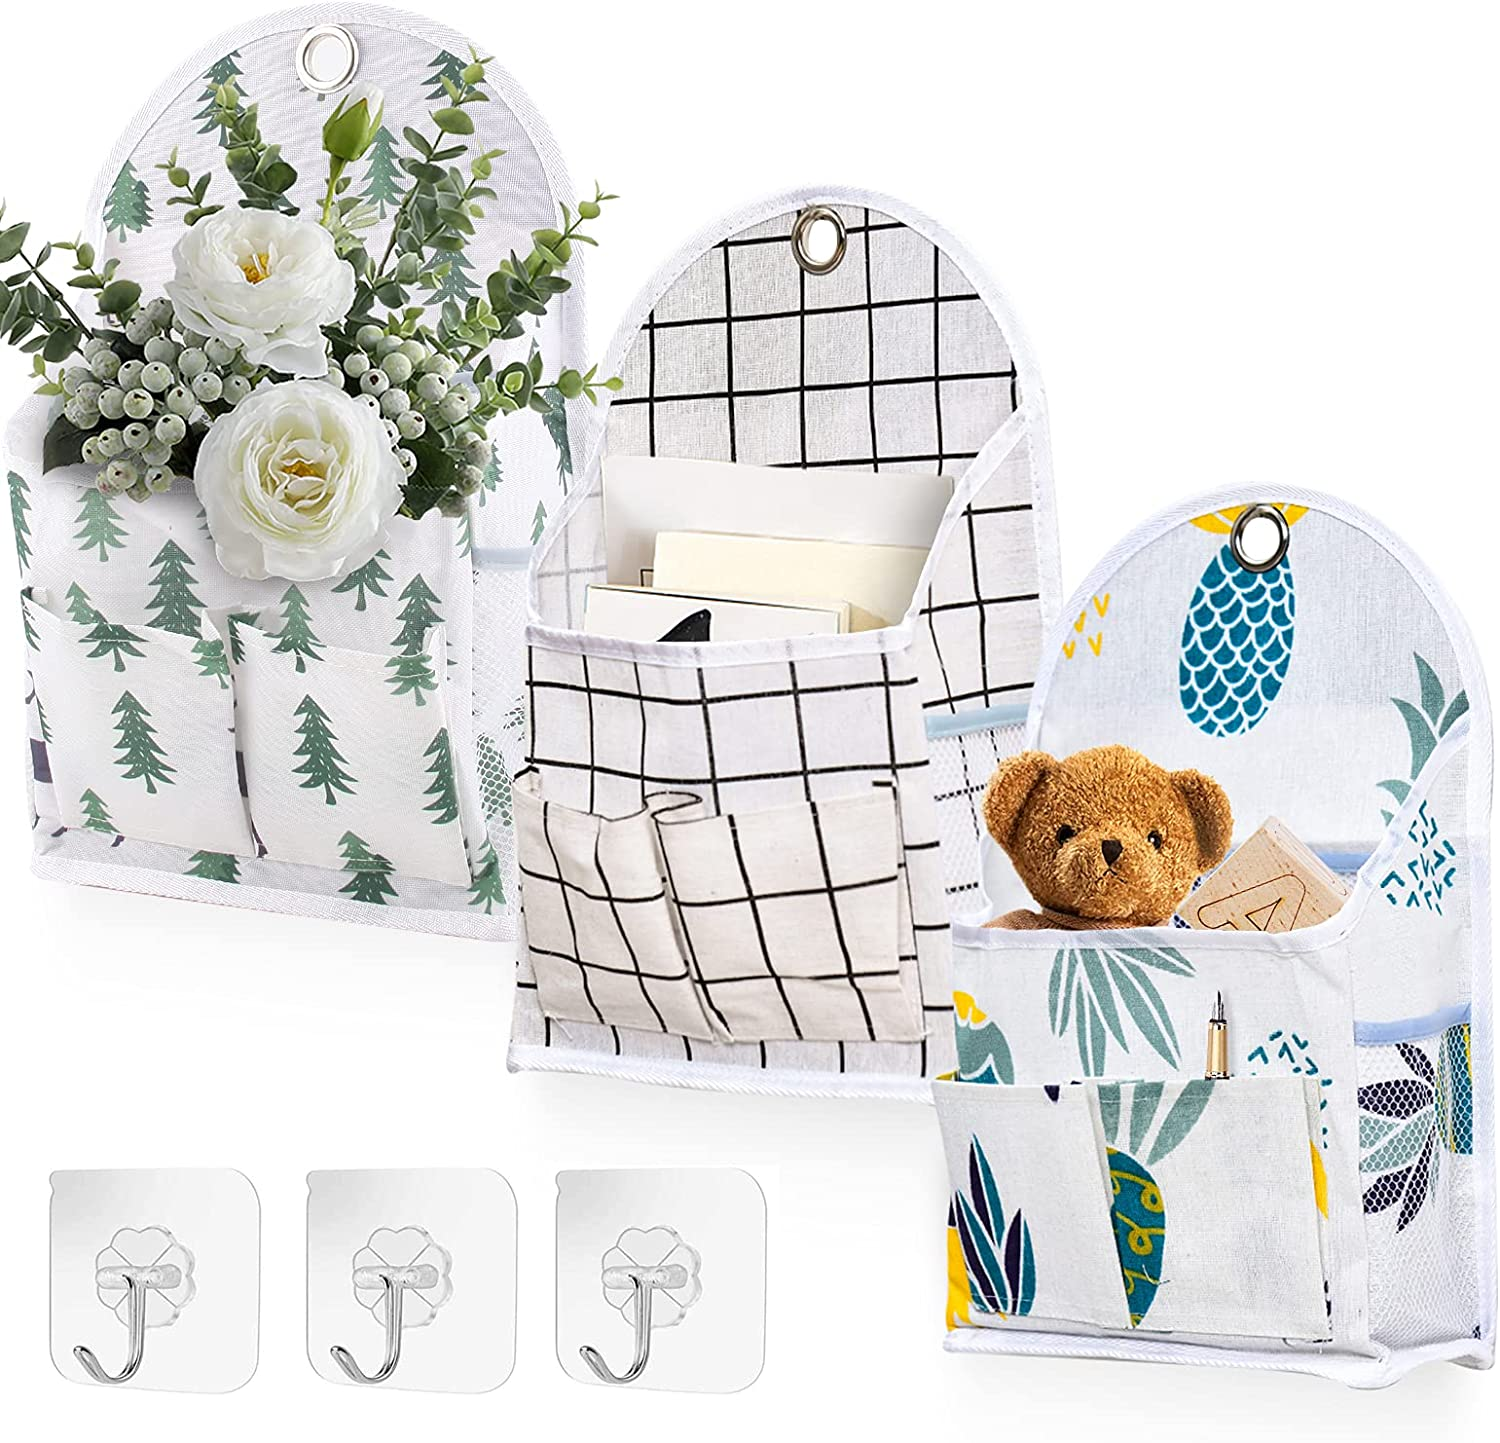 3 Pcs Wall Hanging Organizer Bags Cl Hooks Challenge Factory outlet the lowest price of Japan ☆ Waterproof Door with